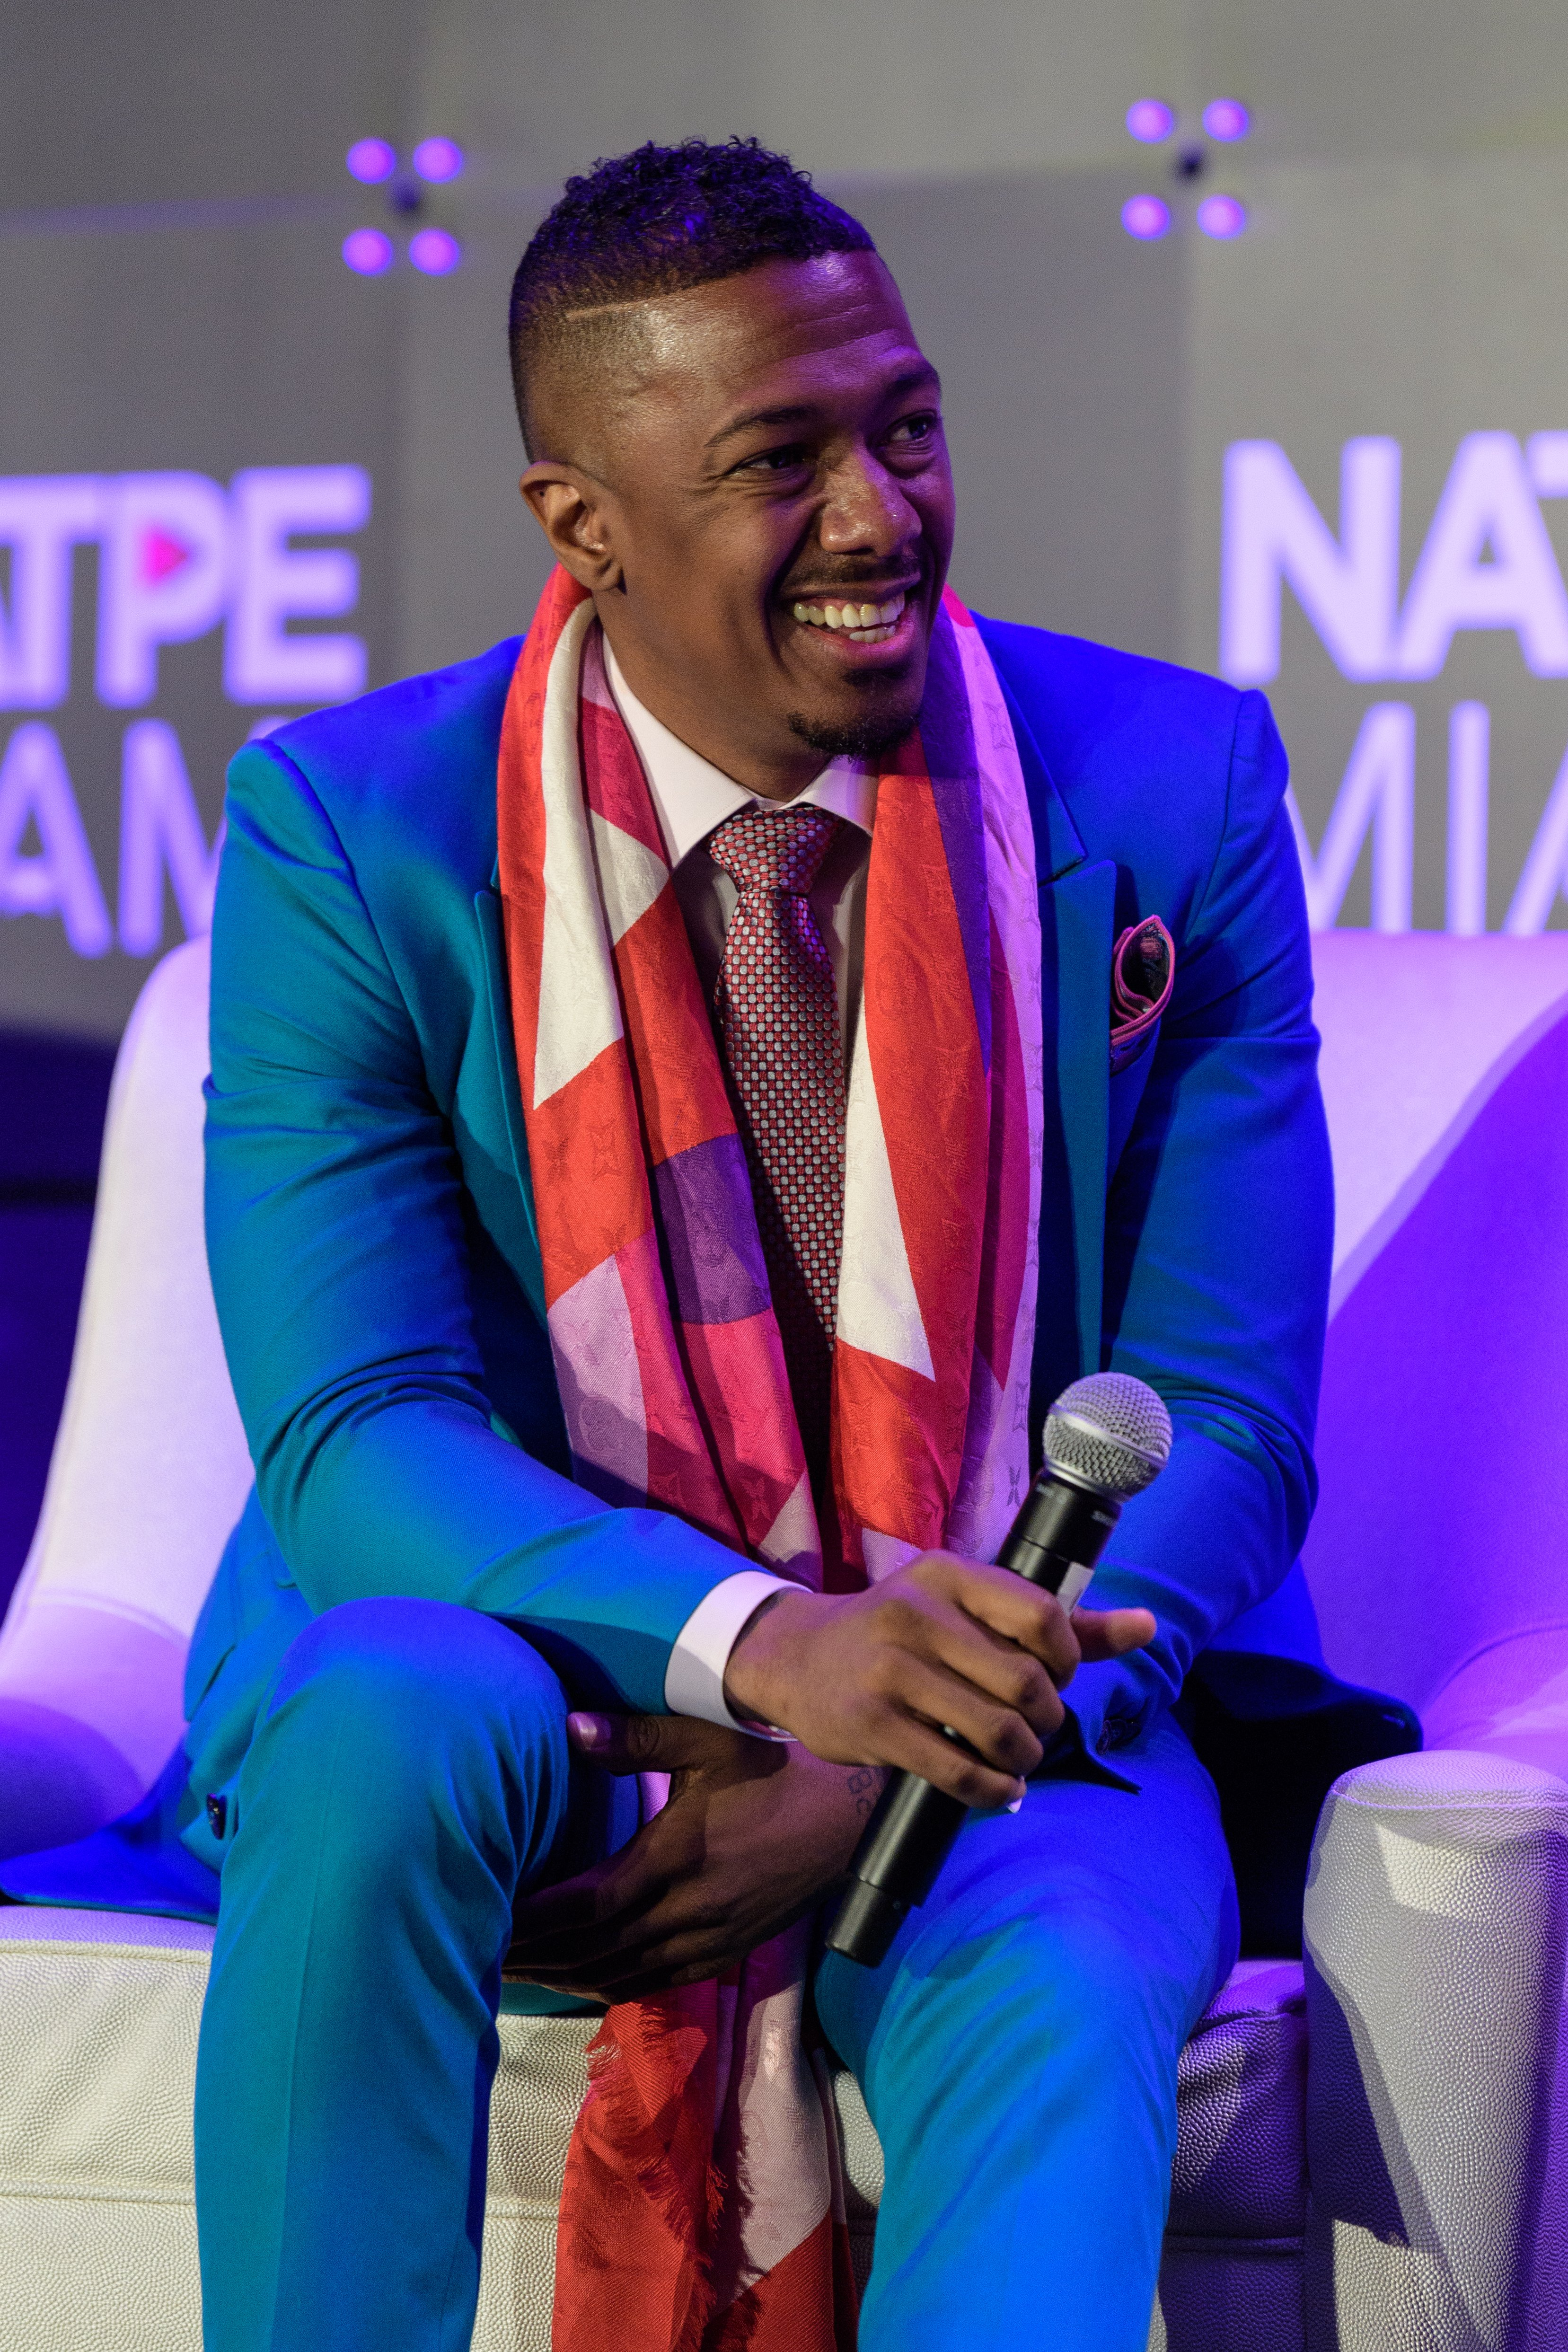 Nick Cannon at the NATPE Miami 2020 - Iris Awards at Fontainebleau Hotel on January 22, 2020 in Miami Beach, Florida. | Source: Getty Images